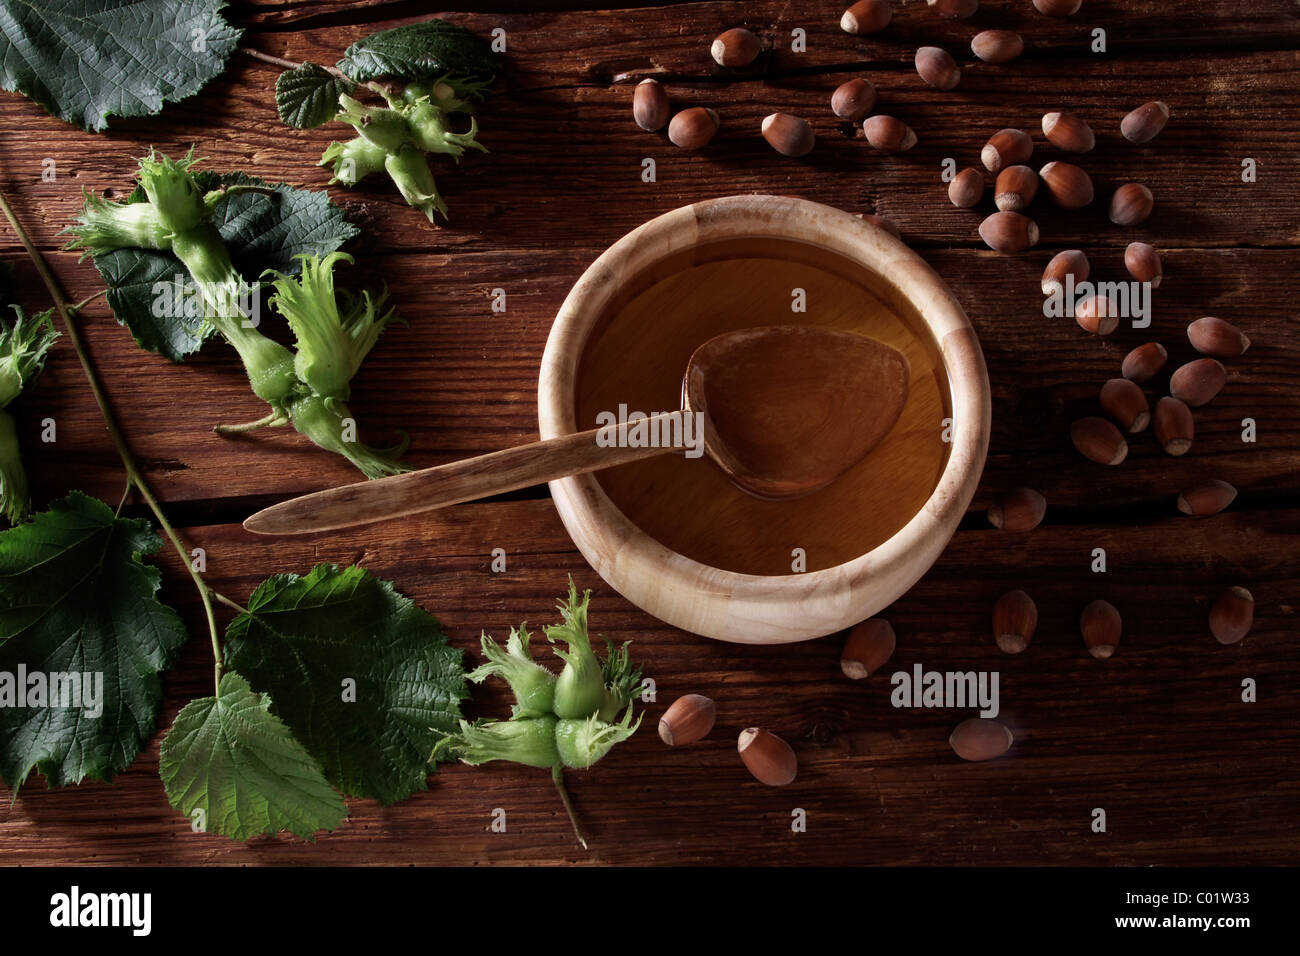 A bowl of hazelnut oil and some ripe and unripe hazelnuts (Corylus avellana) on rustic wooden boards - Stock Image